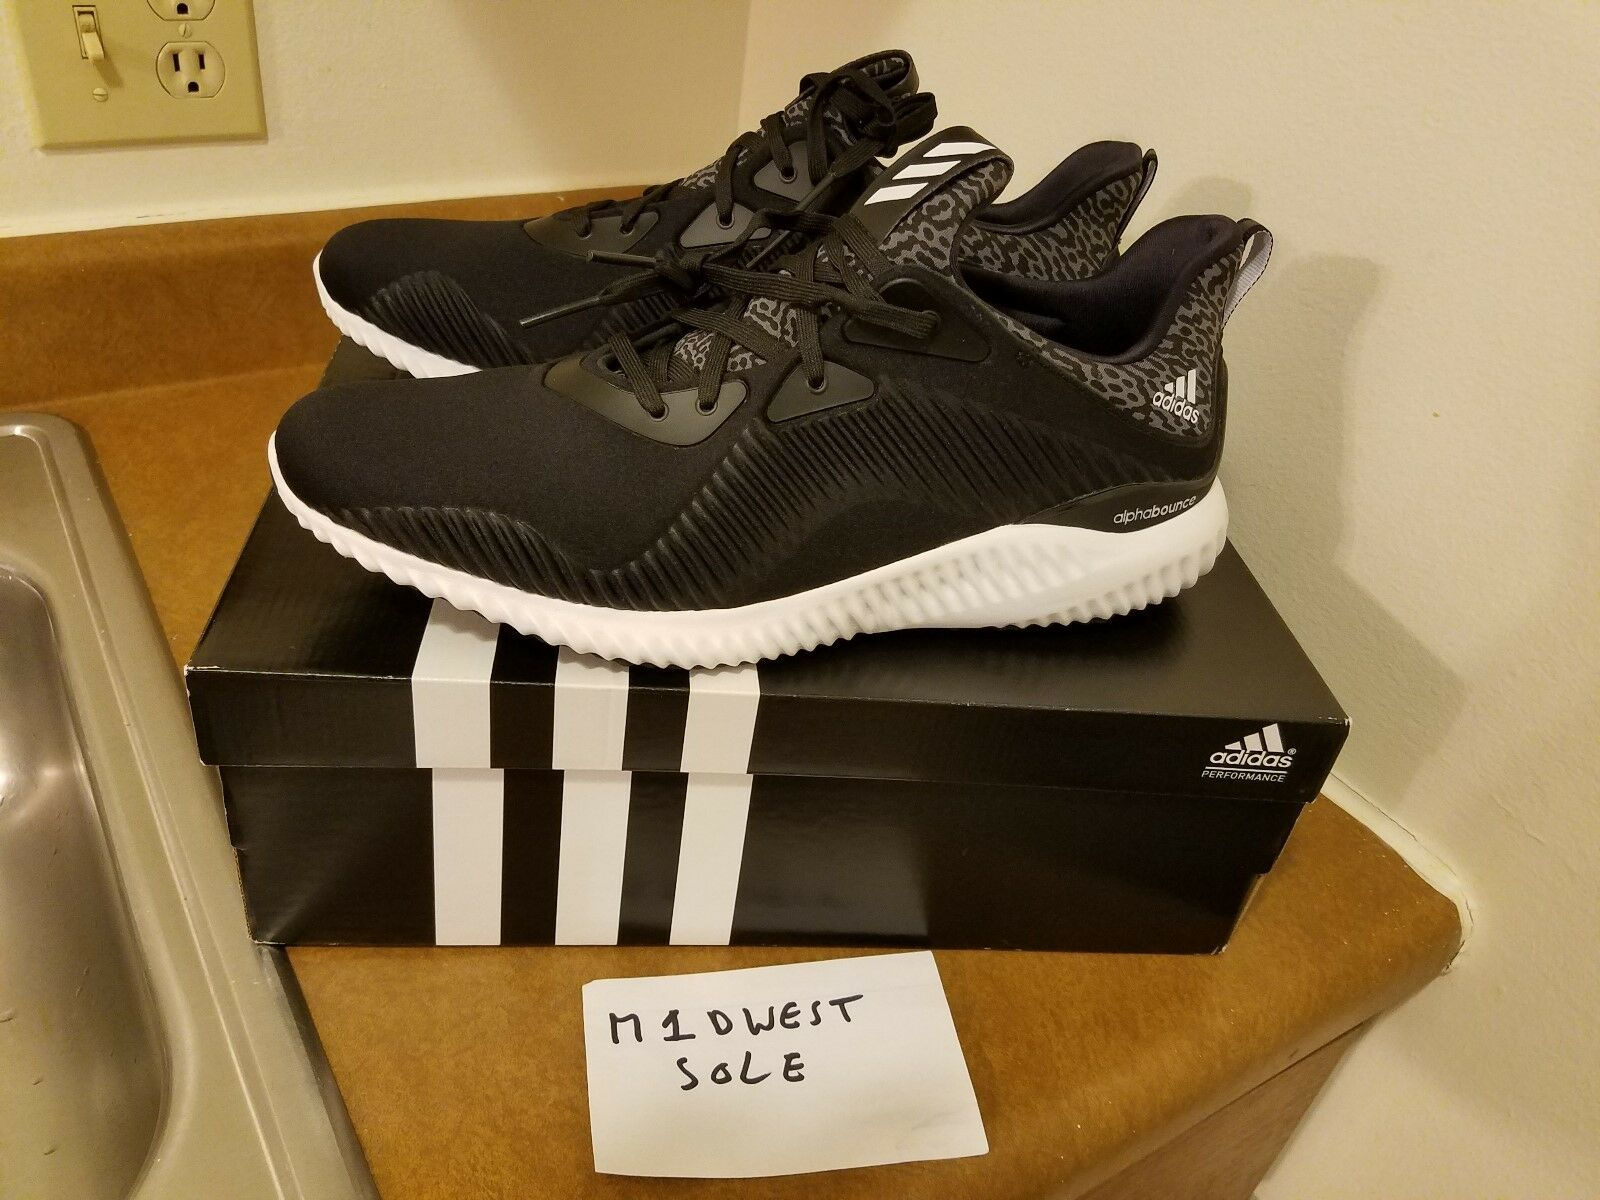 Adidas Alphabounce M Black size 12 Running shoes